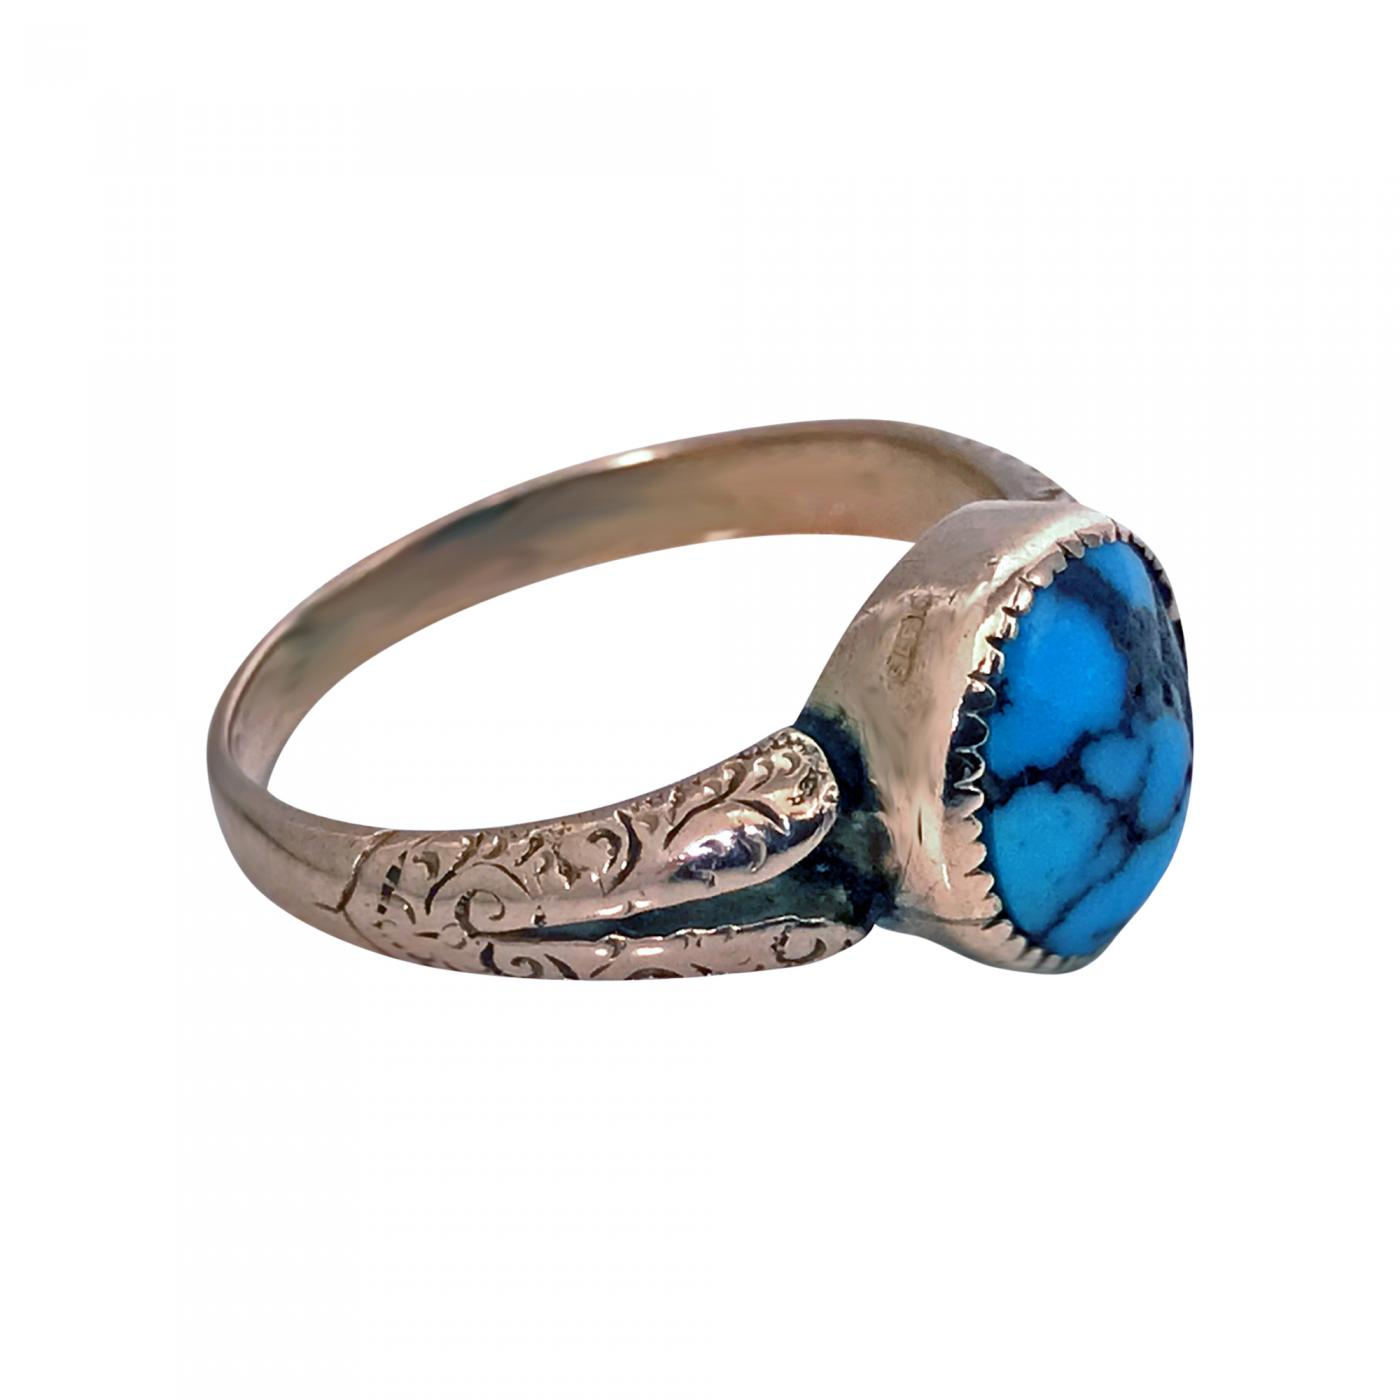 products turquoise vintage rings product image oshoplive accessories